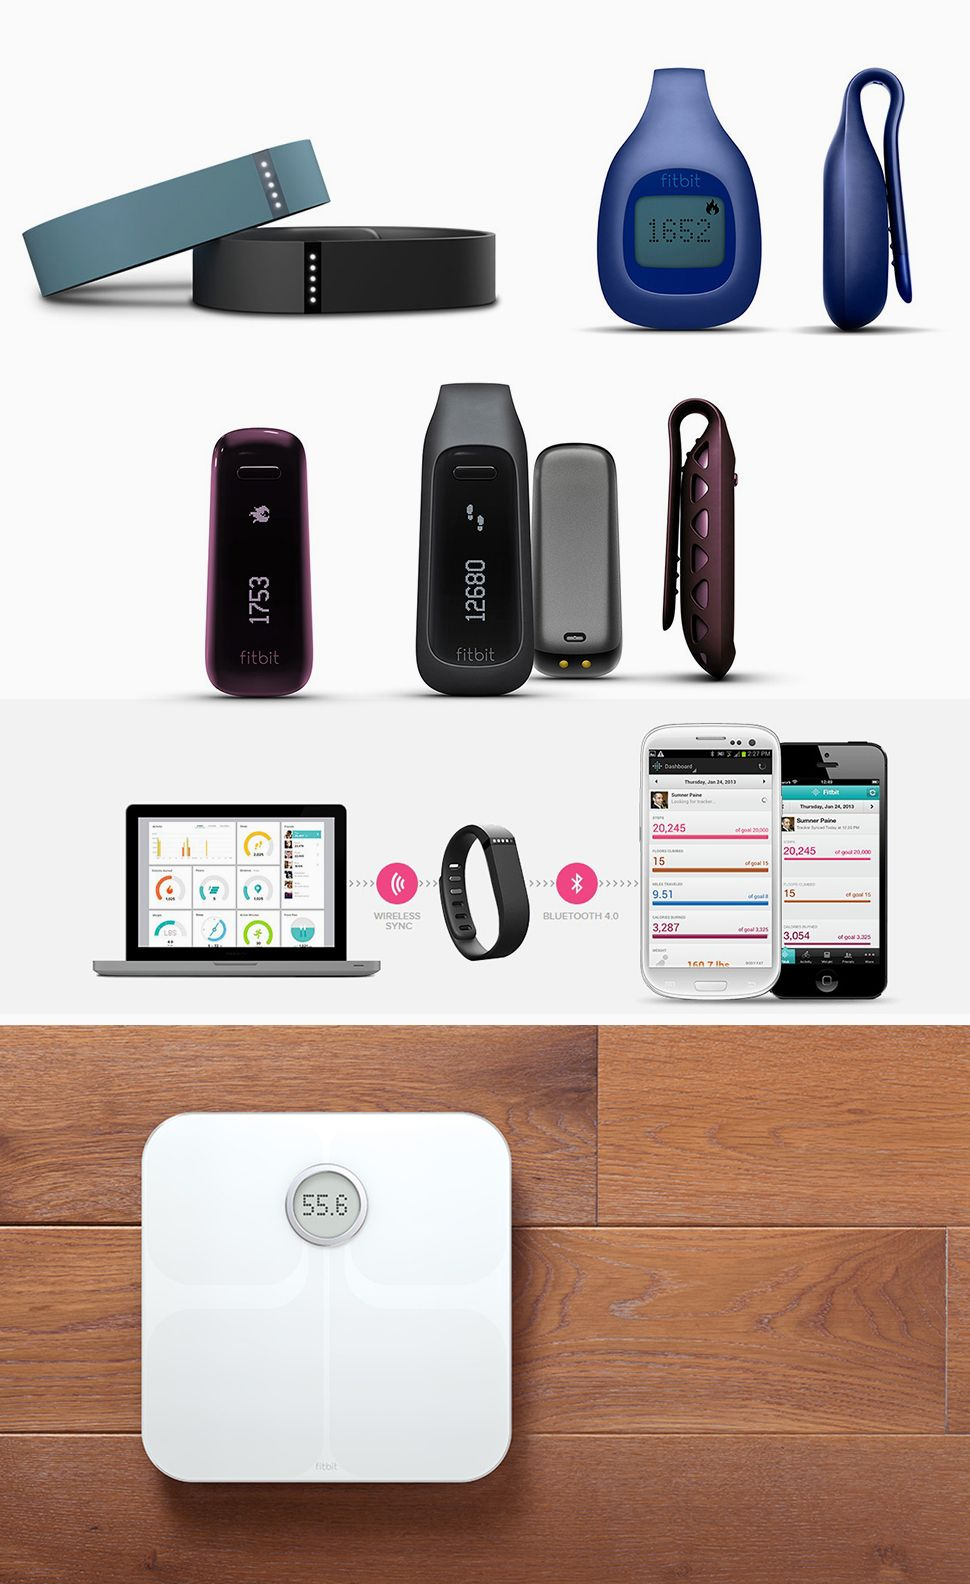 Fitbit creates a set of devices that help track activities